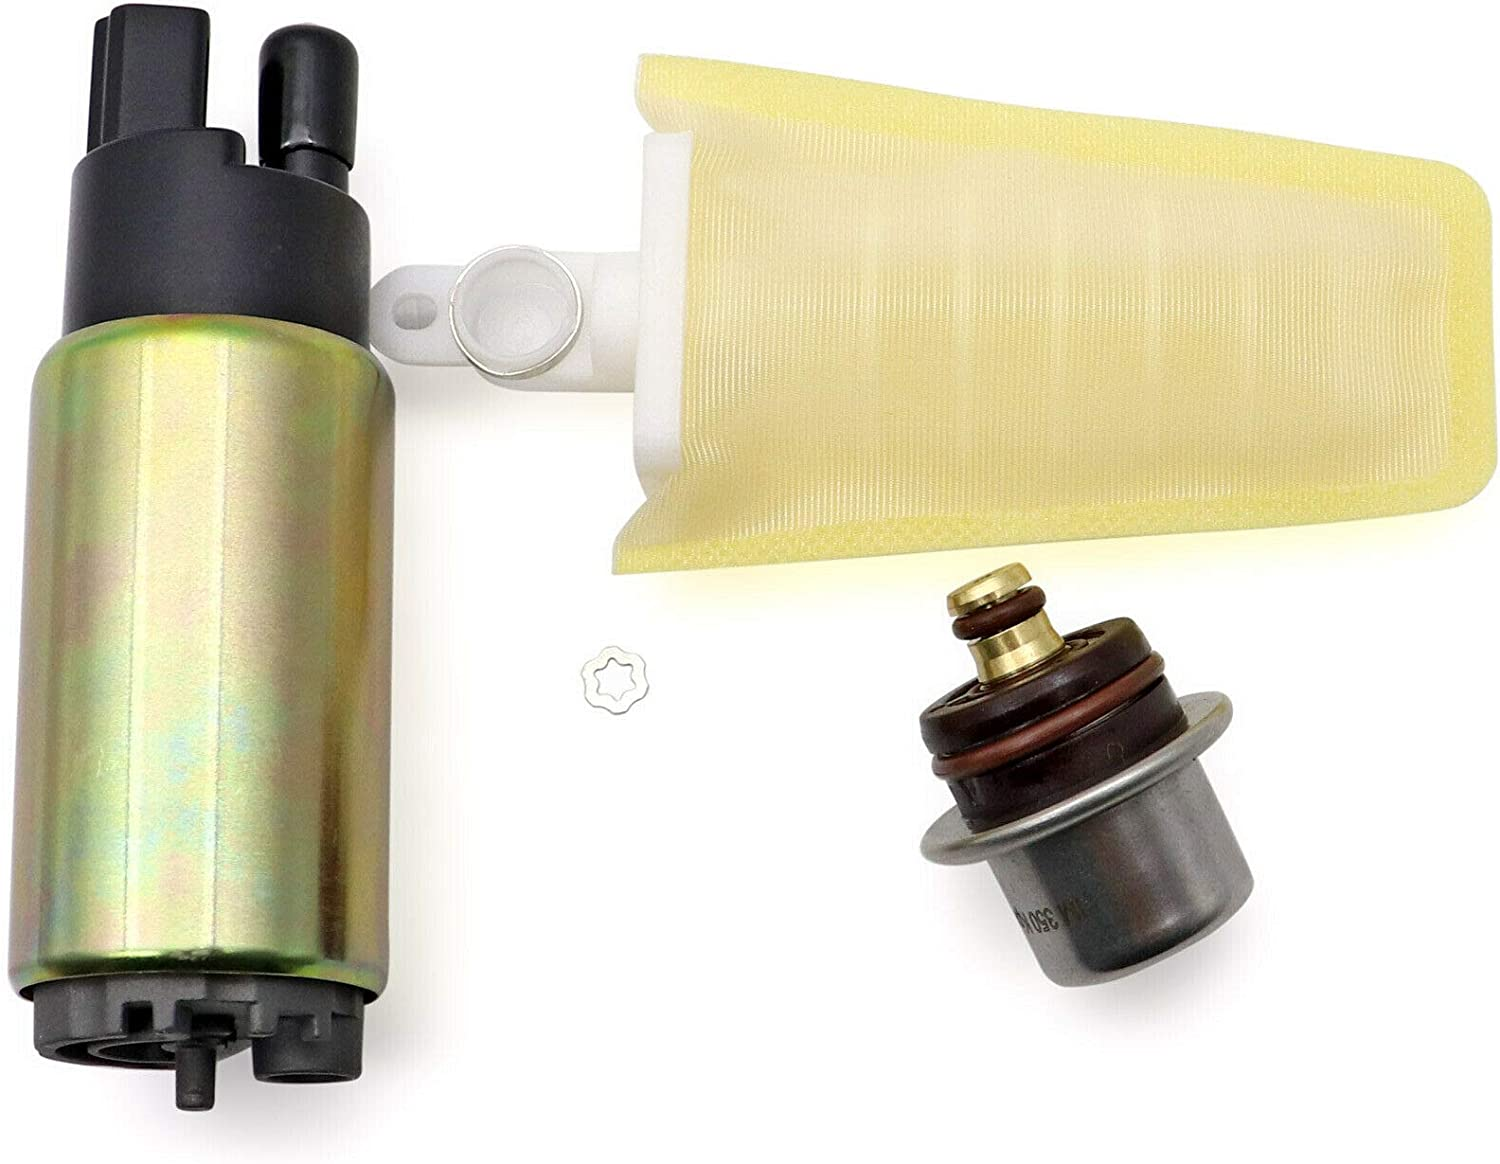 OEM FOR Polaris Ranger 500 700 800 fuel pump with regulator and strainer NEW